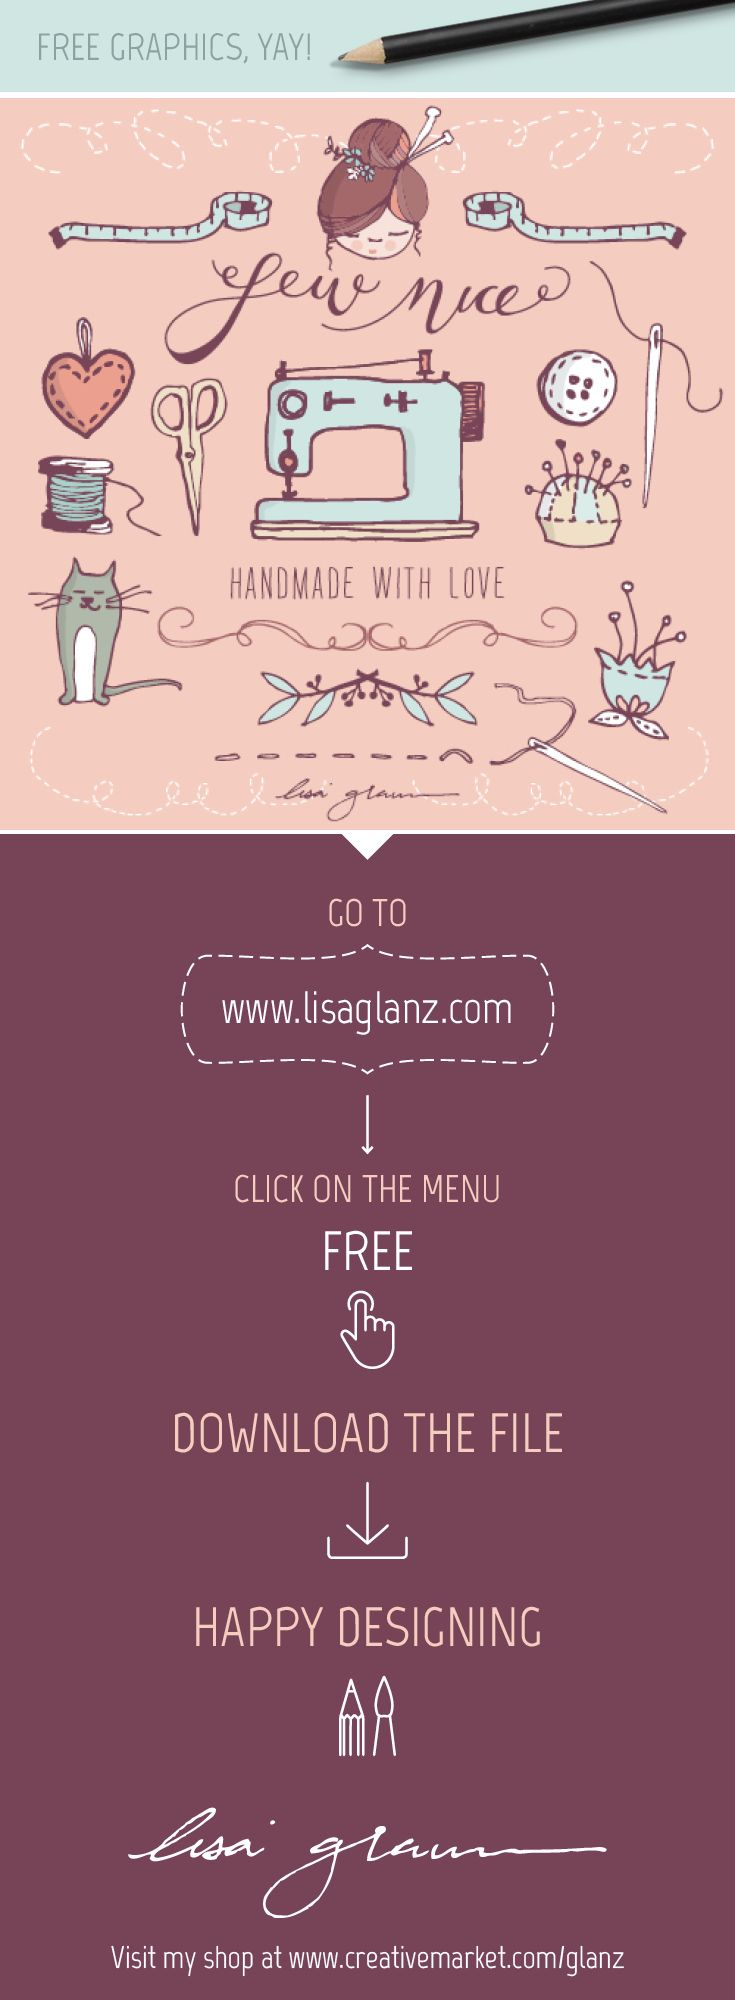 Visit http://www.lisaglanz.com to grab this adorable graphic set free!  #free #graphics #illustration #vector #design